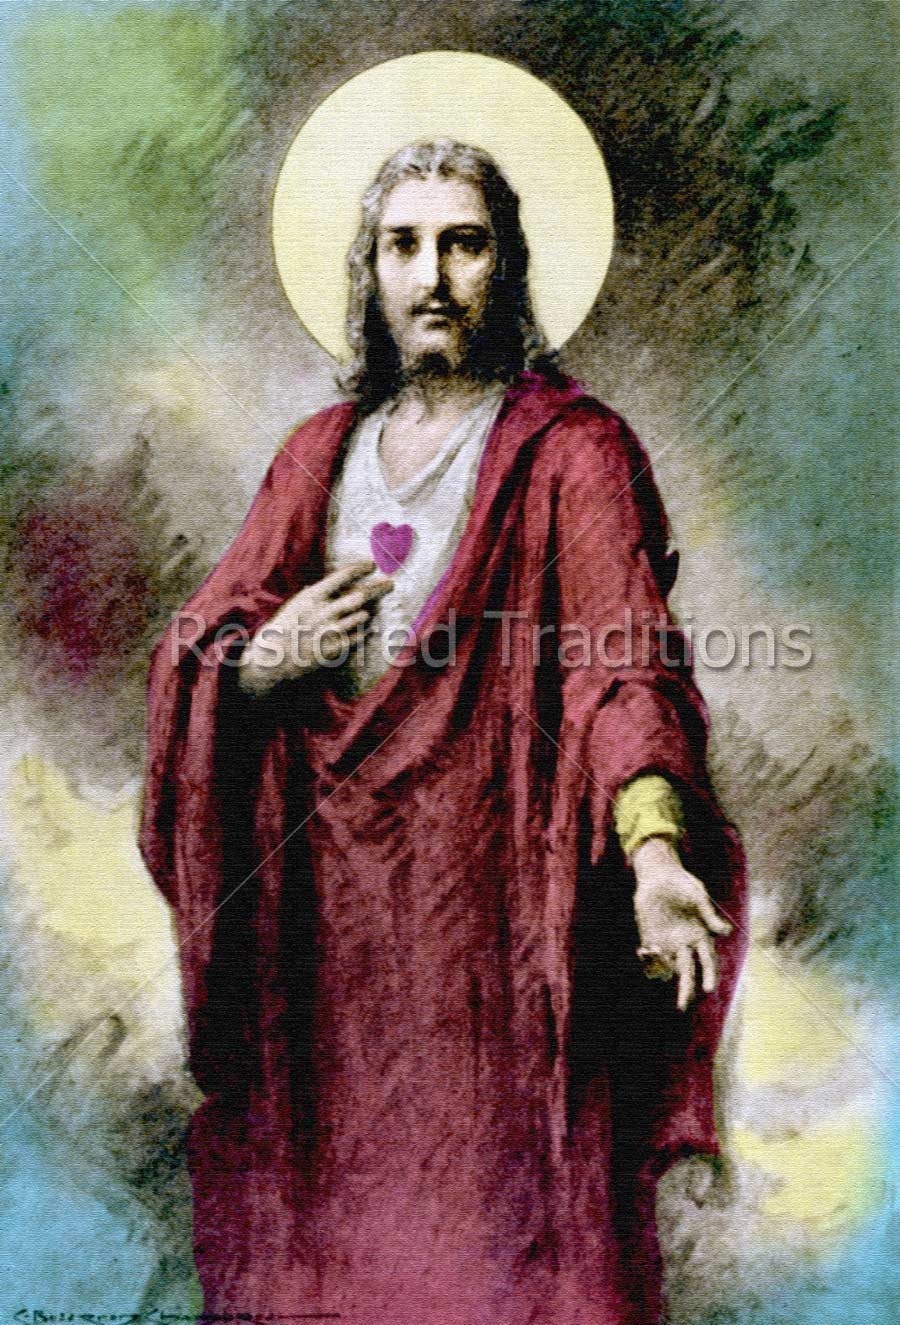 Jesus Christ Pointing to Heart